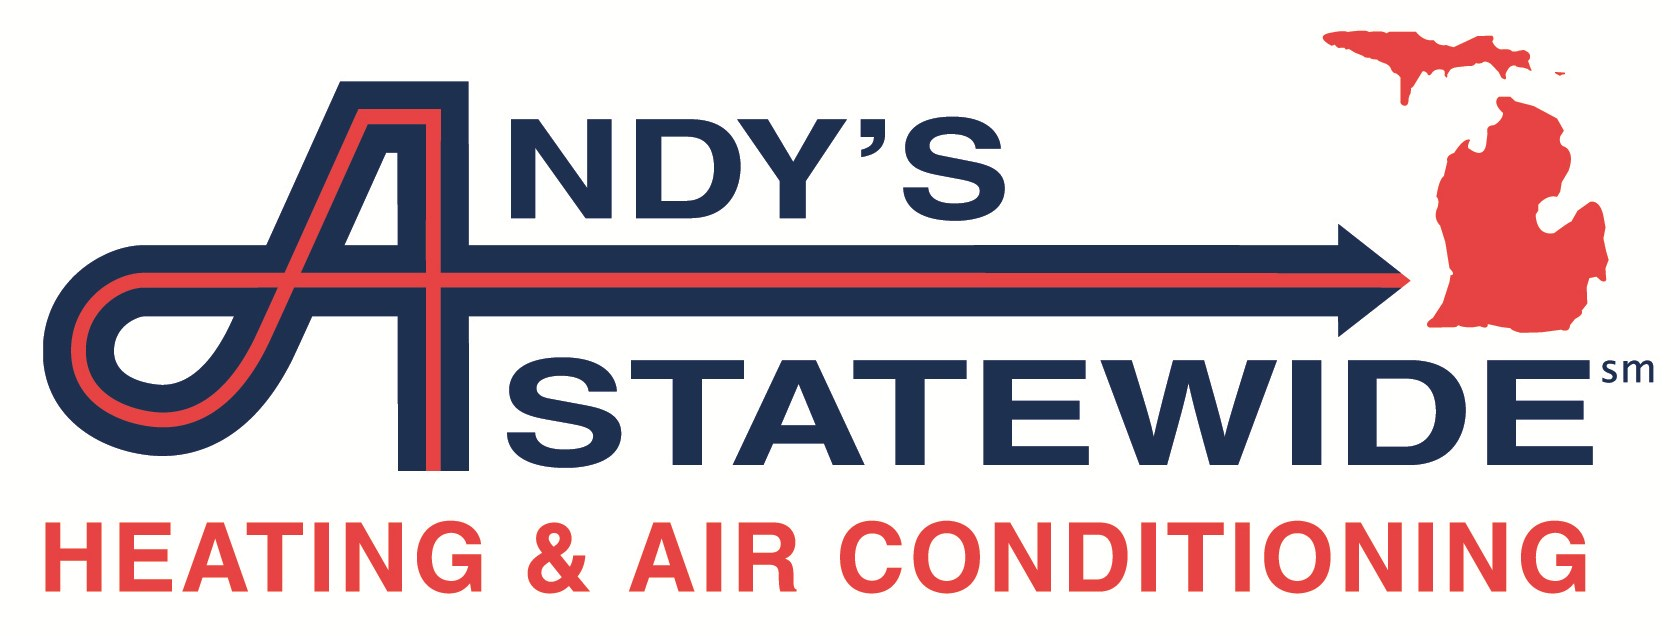 Andy's Statewide logo